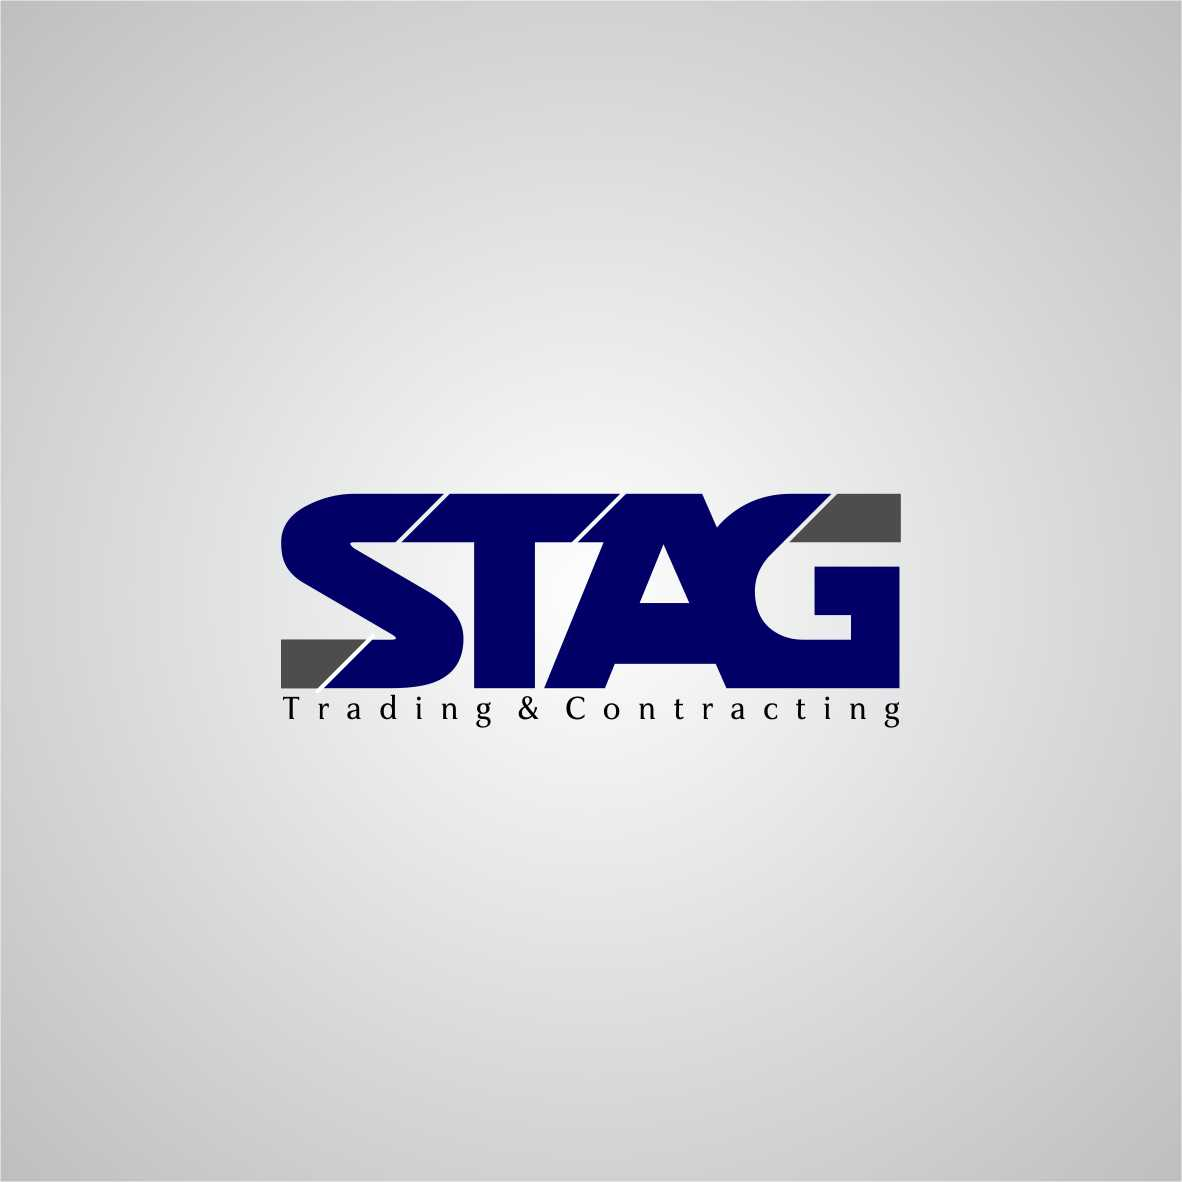 Logo Design by arteo_design - Entry No. 133 in the Logo Design Contest Captivating Logo Design for STAG Trading & Contracting.